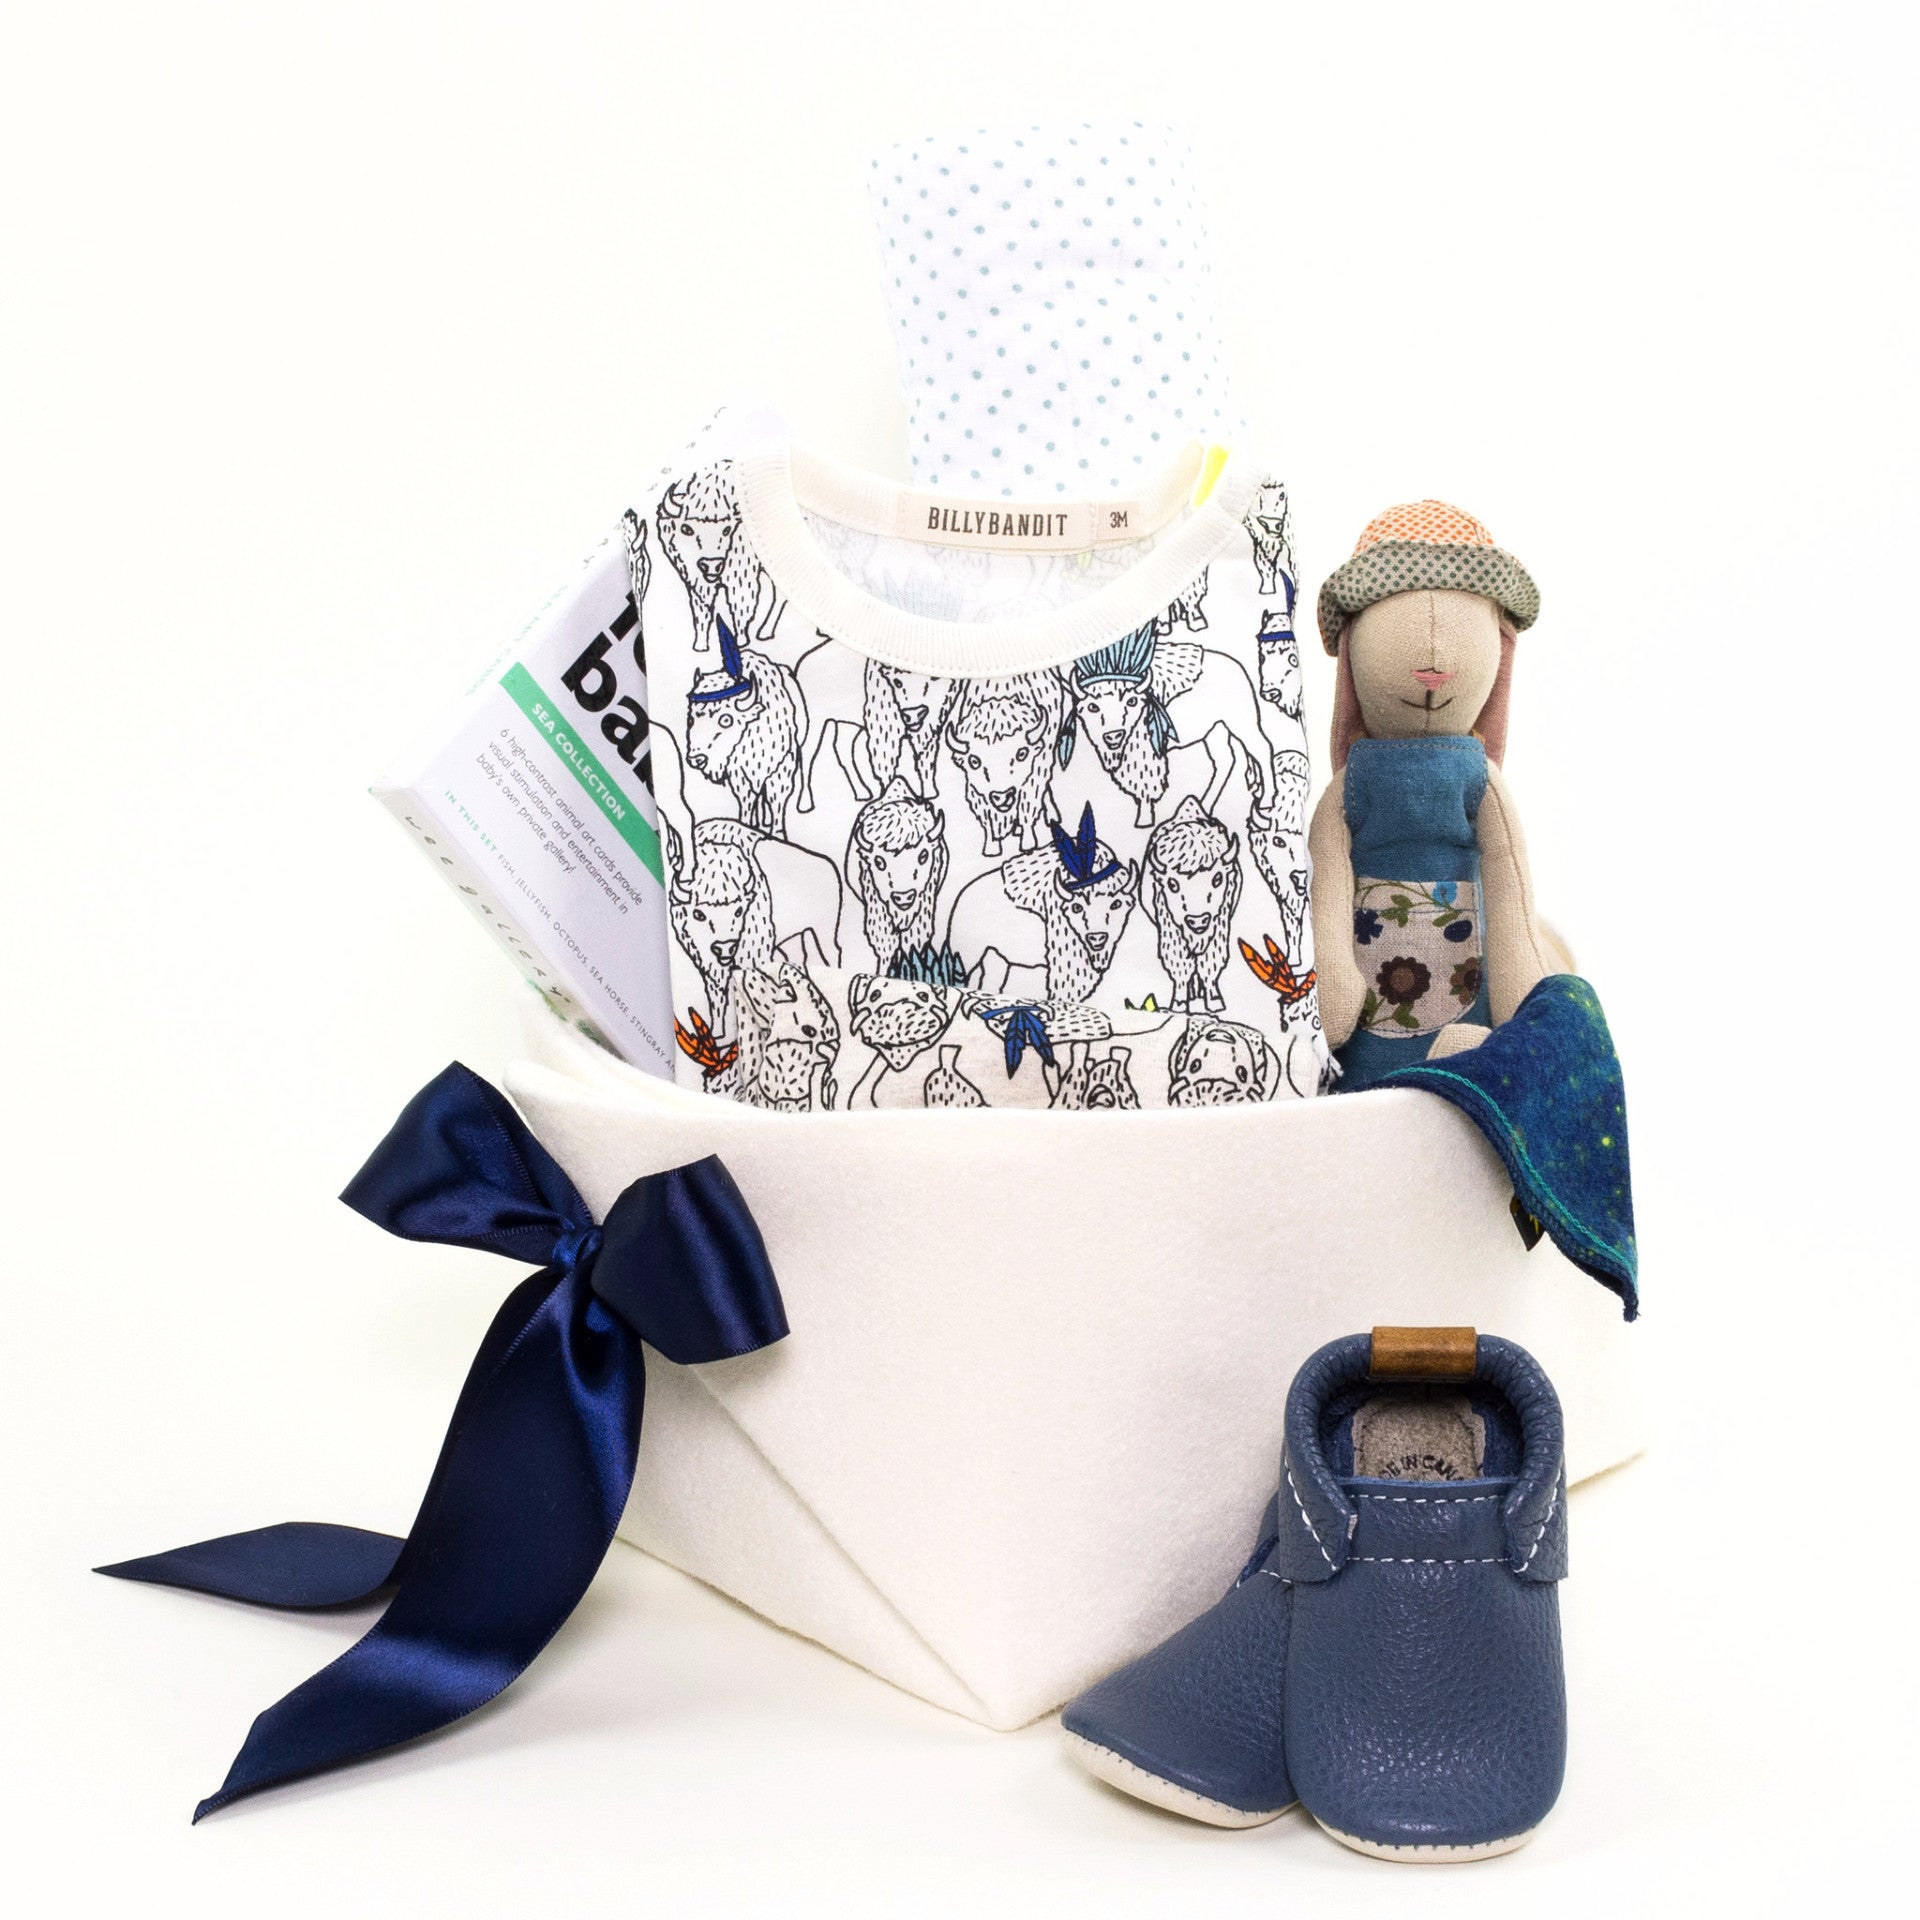 Billybandit Luxury Baby Boy Gift Basket at Bonjour Baby Baskets